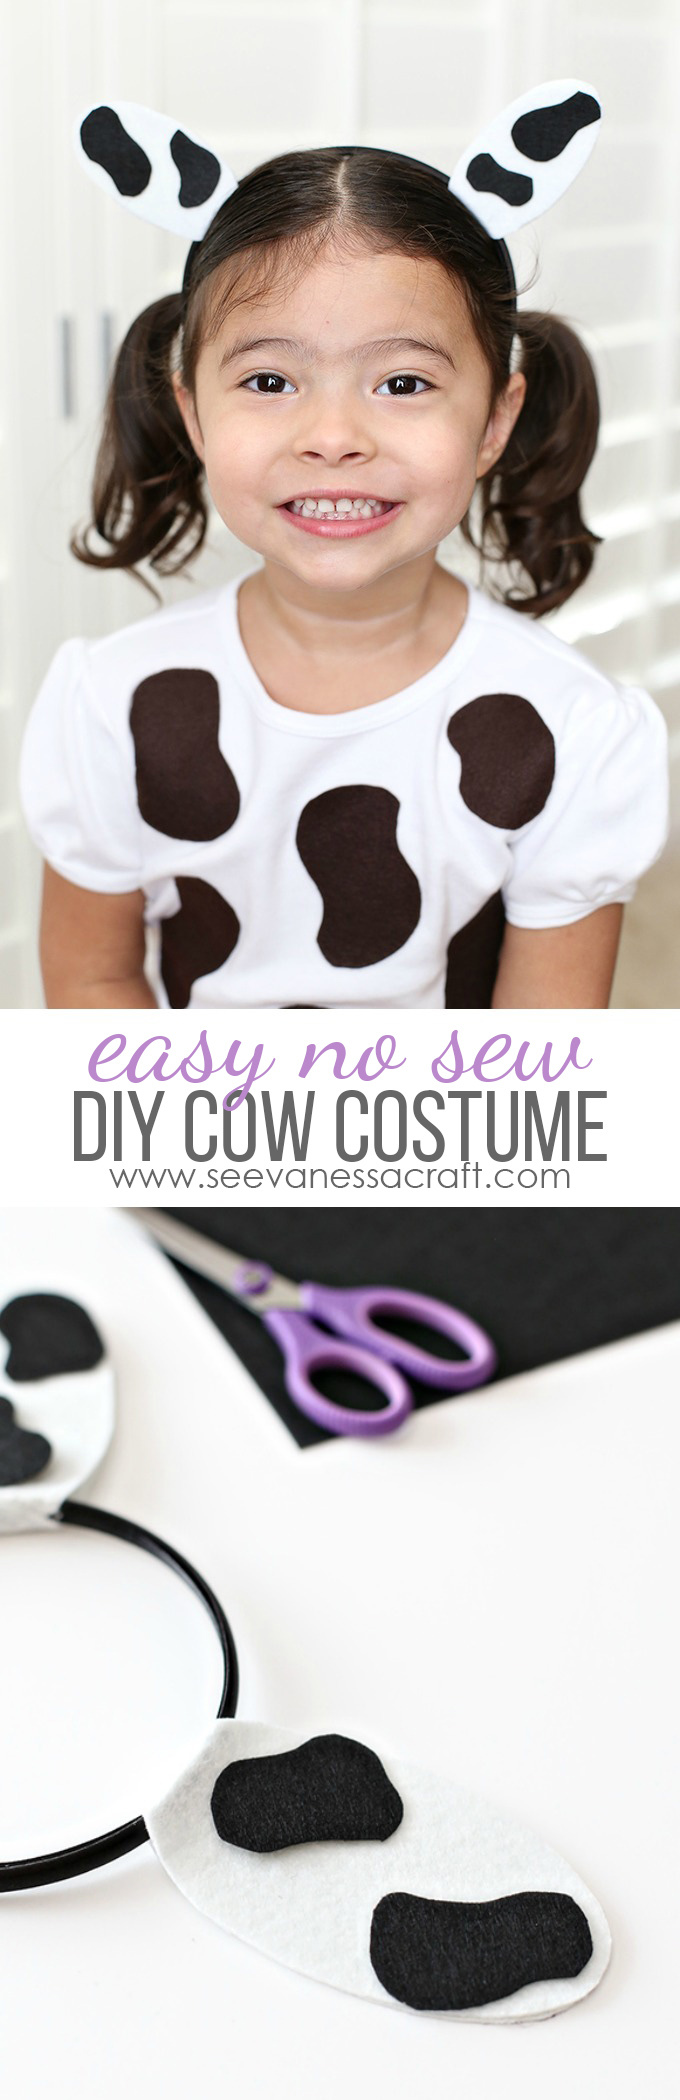 Easy No Sew DIY Cow Costume